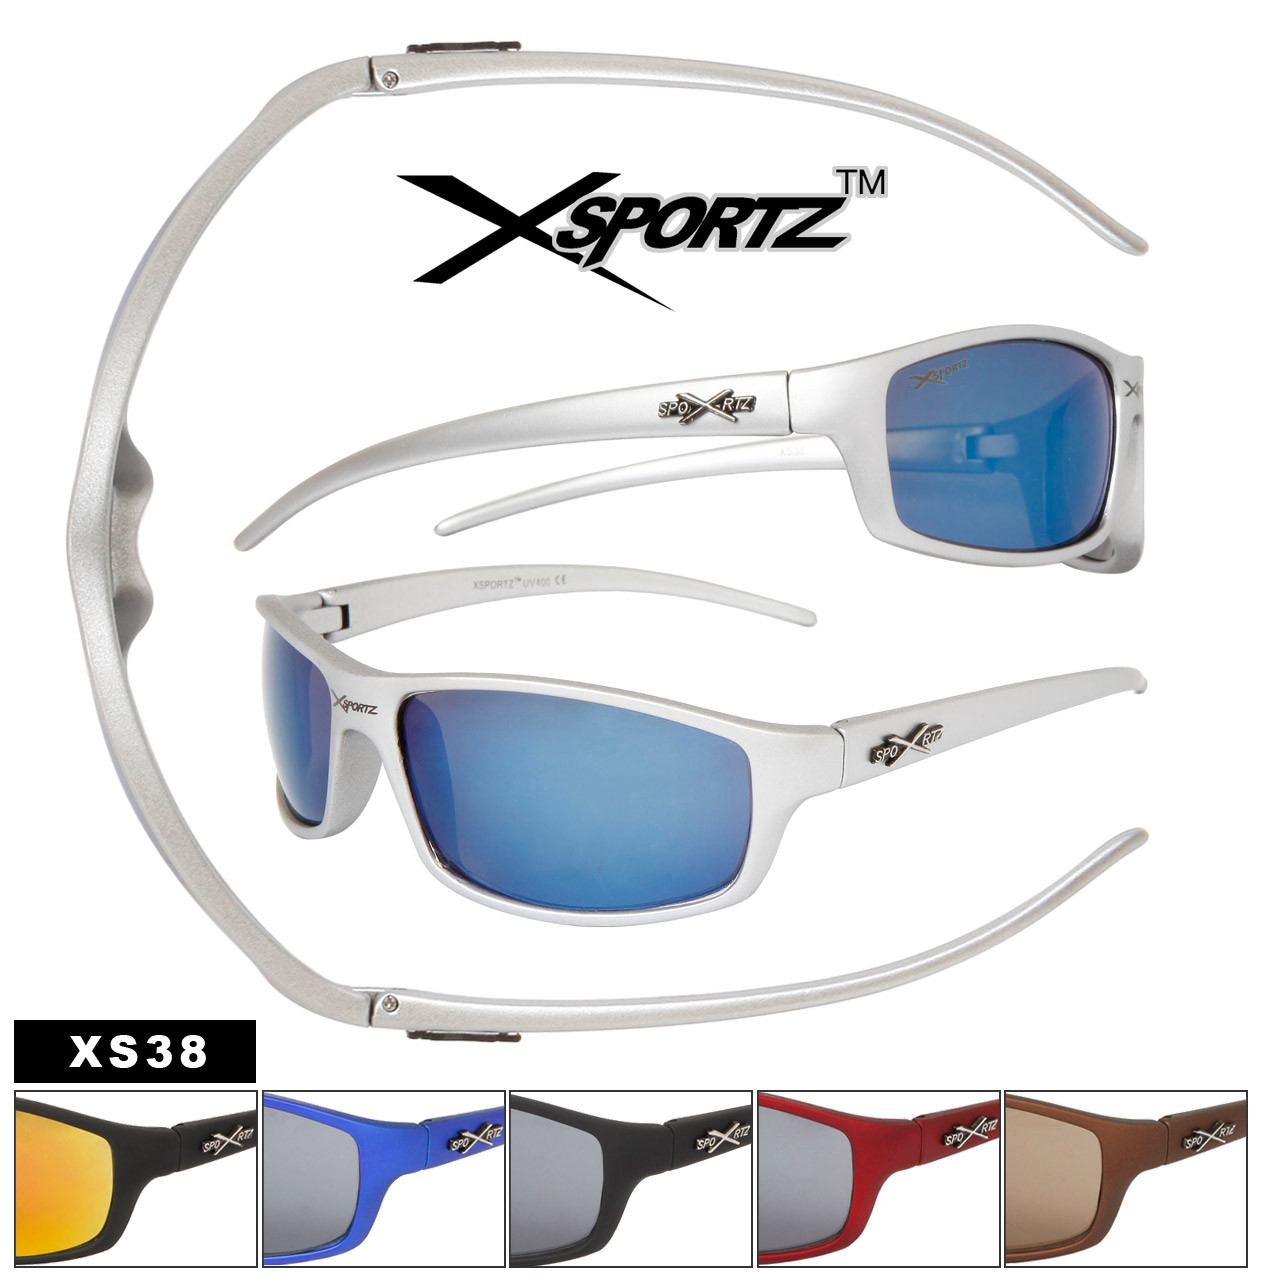 XS38 New Sports Sunglasses!